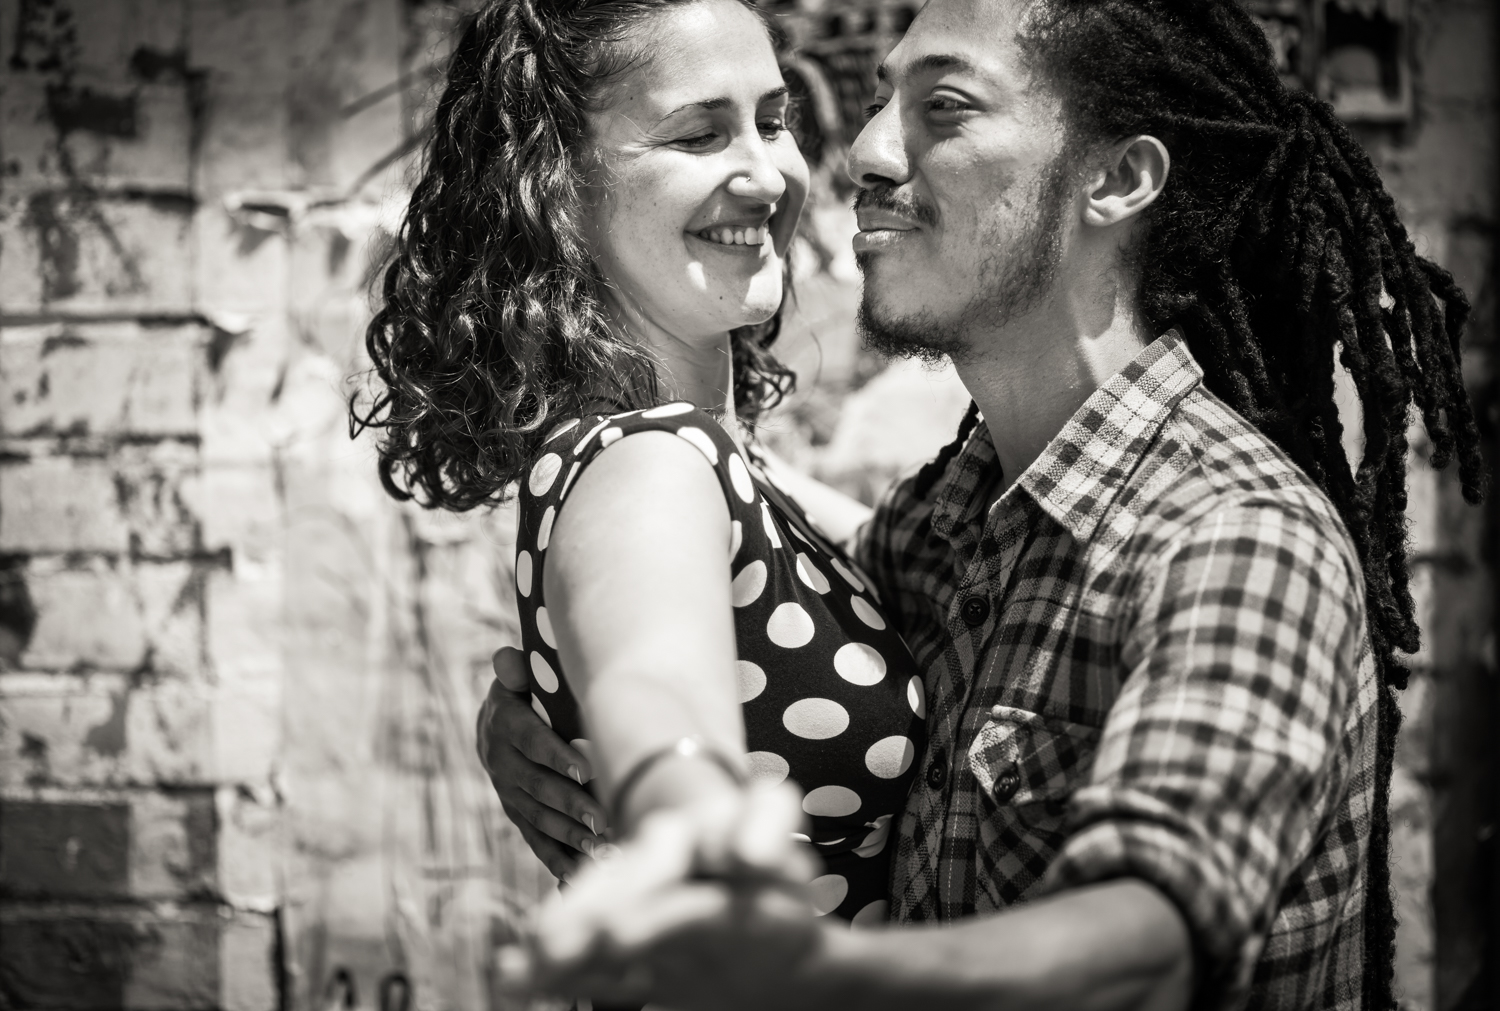 Black and white photo of couple dancing in front of graffiti wall